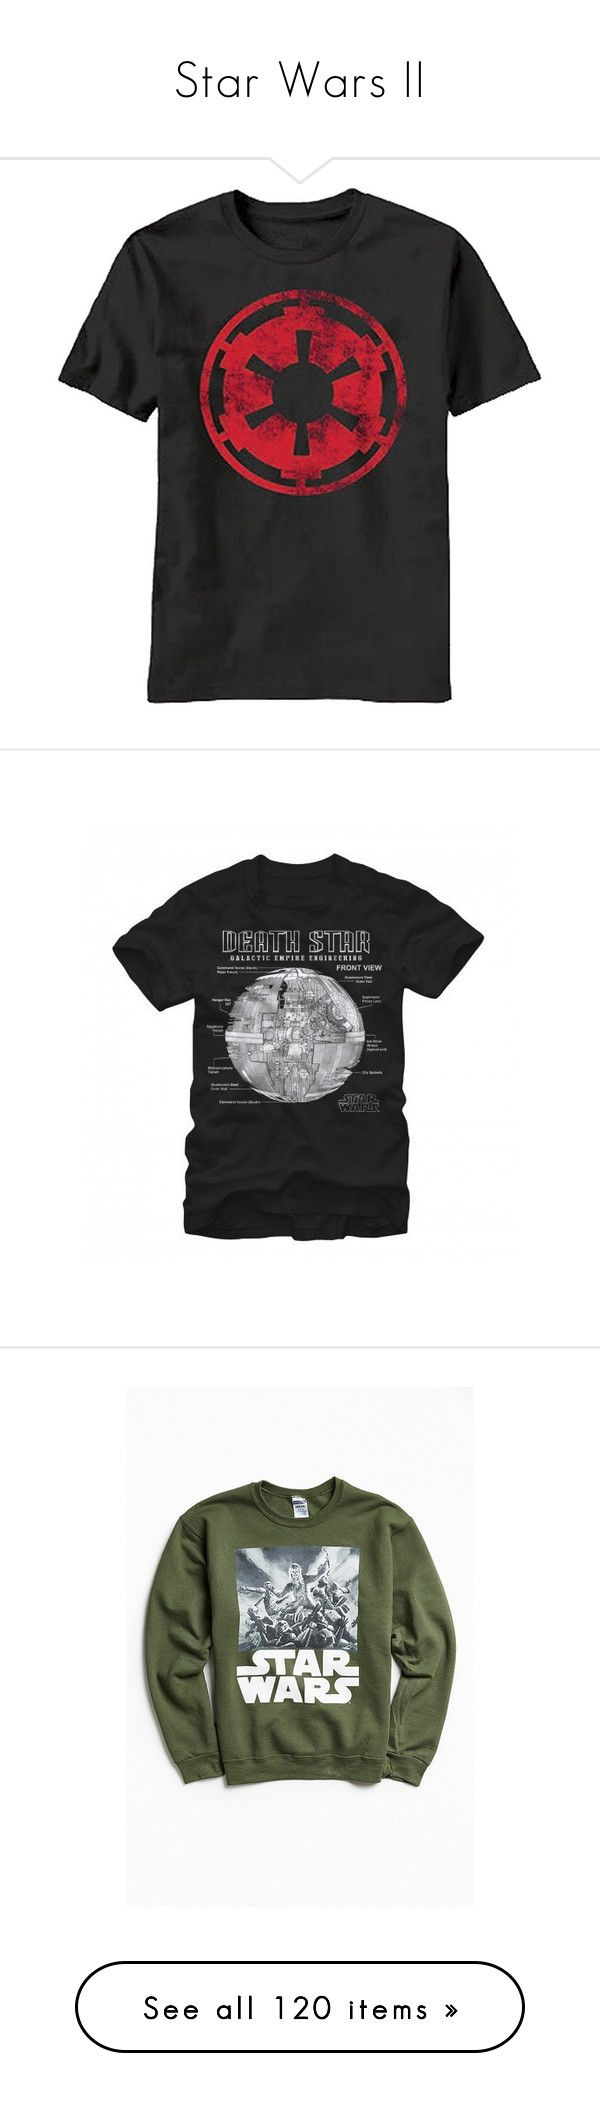 """Star Wars II"" by shulabond on Polyvore featuring tops, t-shirts, logo t shirts, logo top, empire top, logo tees, men's fashion, men's clothing, men's shirts and men's t-shirts"